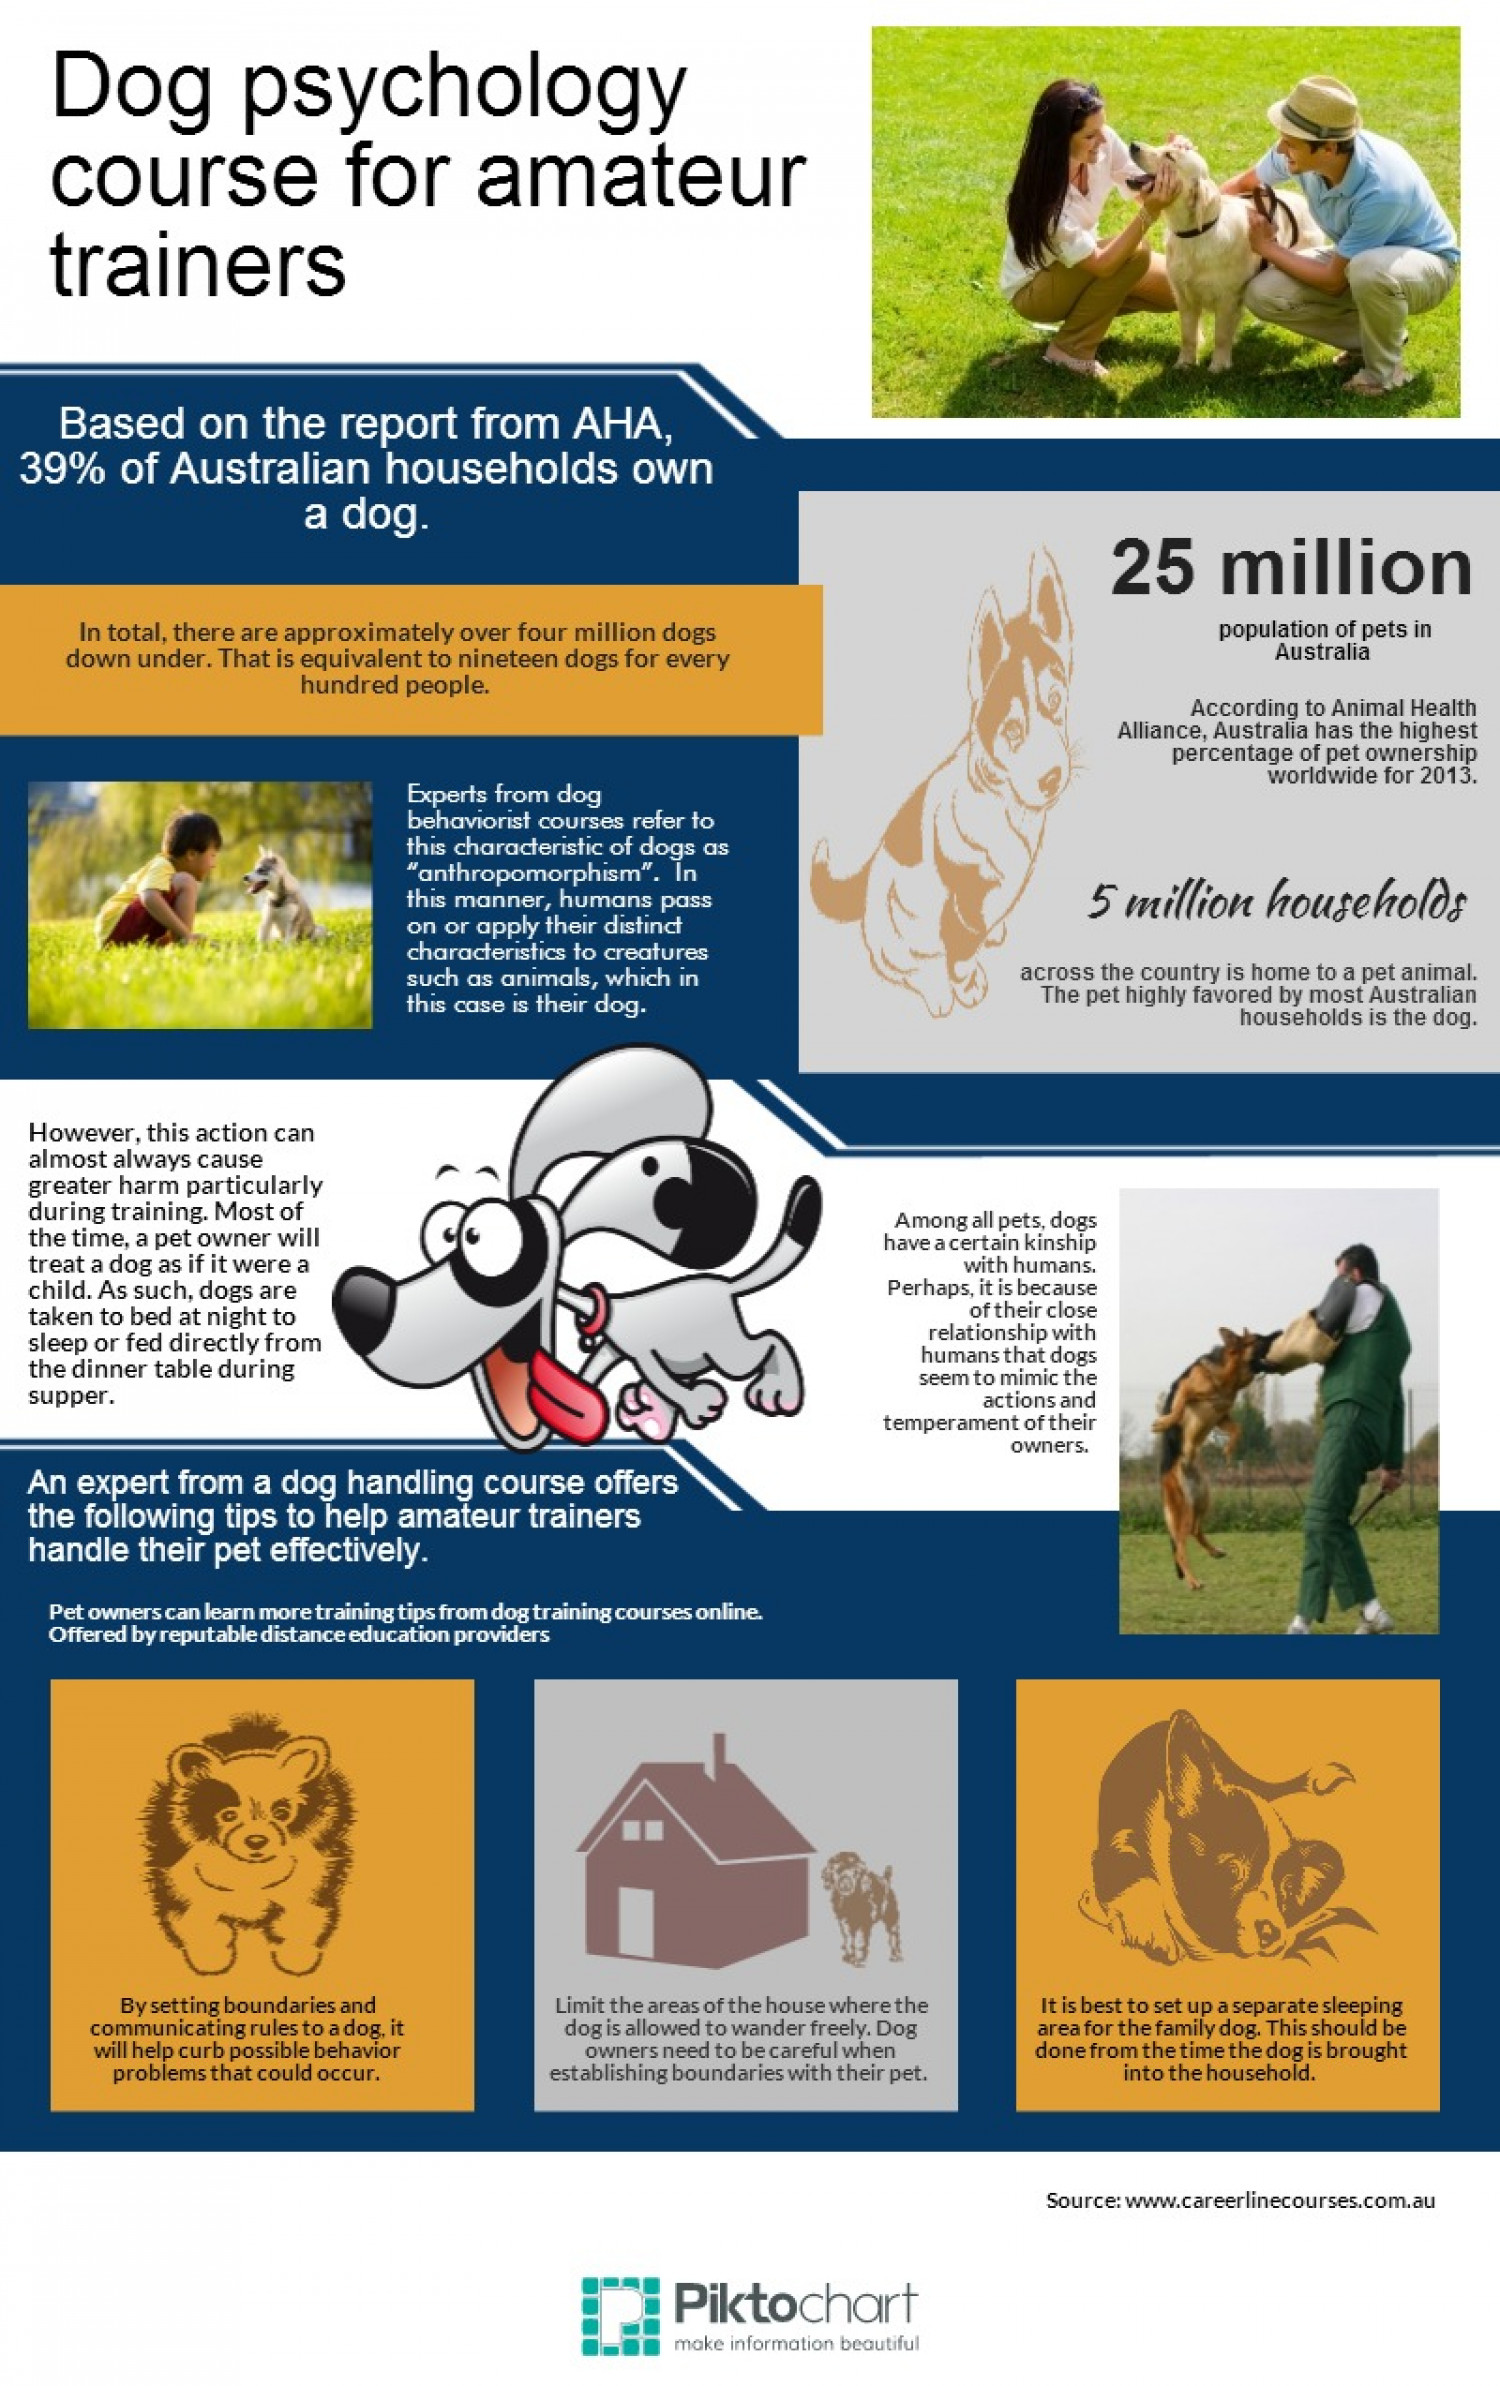 Dog Training Courses in Australia Infographic